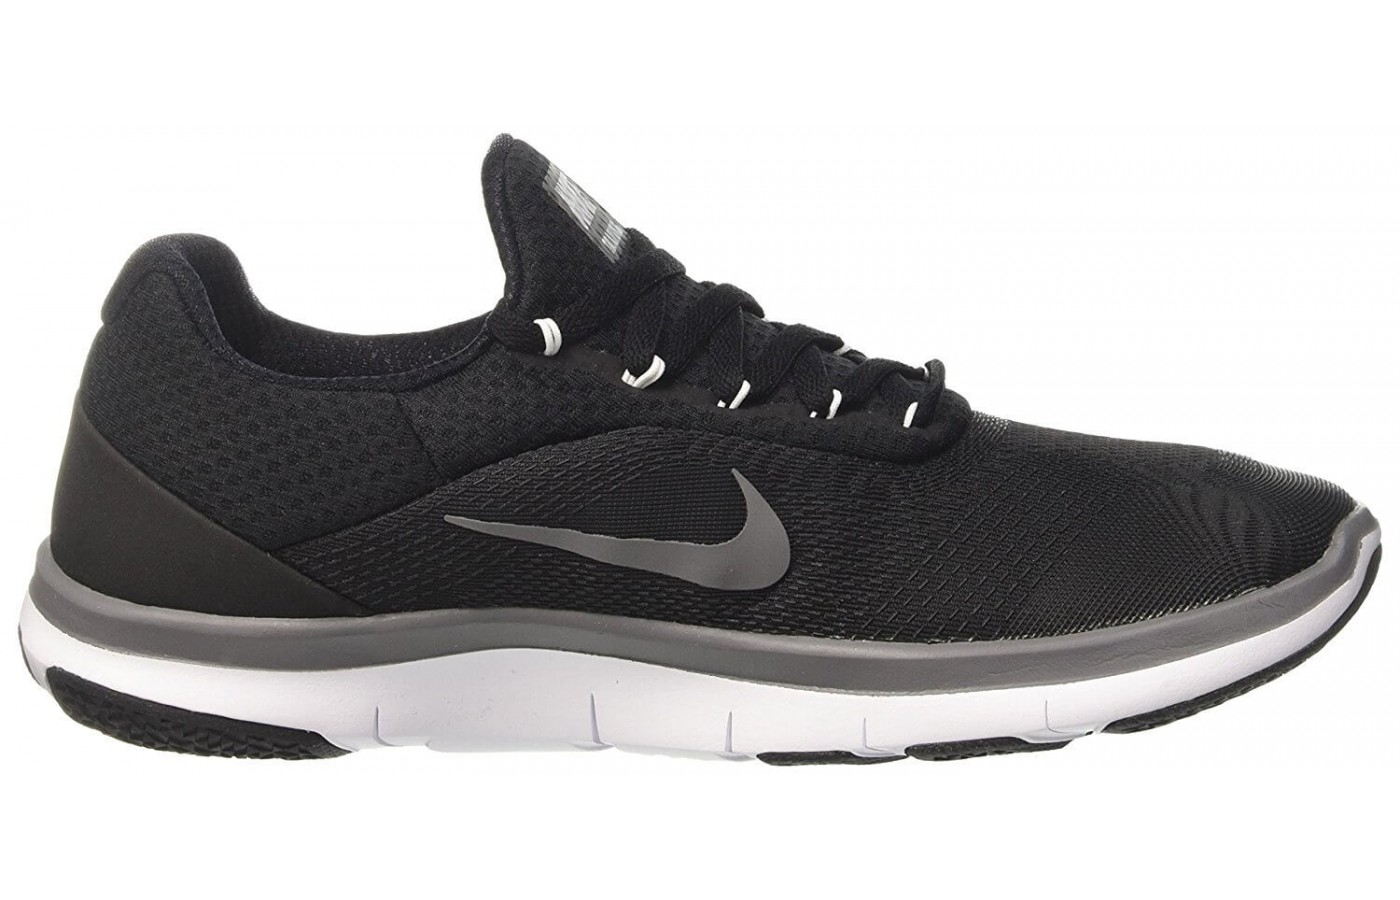 The Nike Free Trainer V7 features a minimalist design